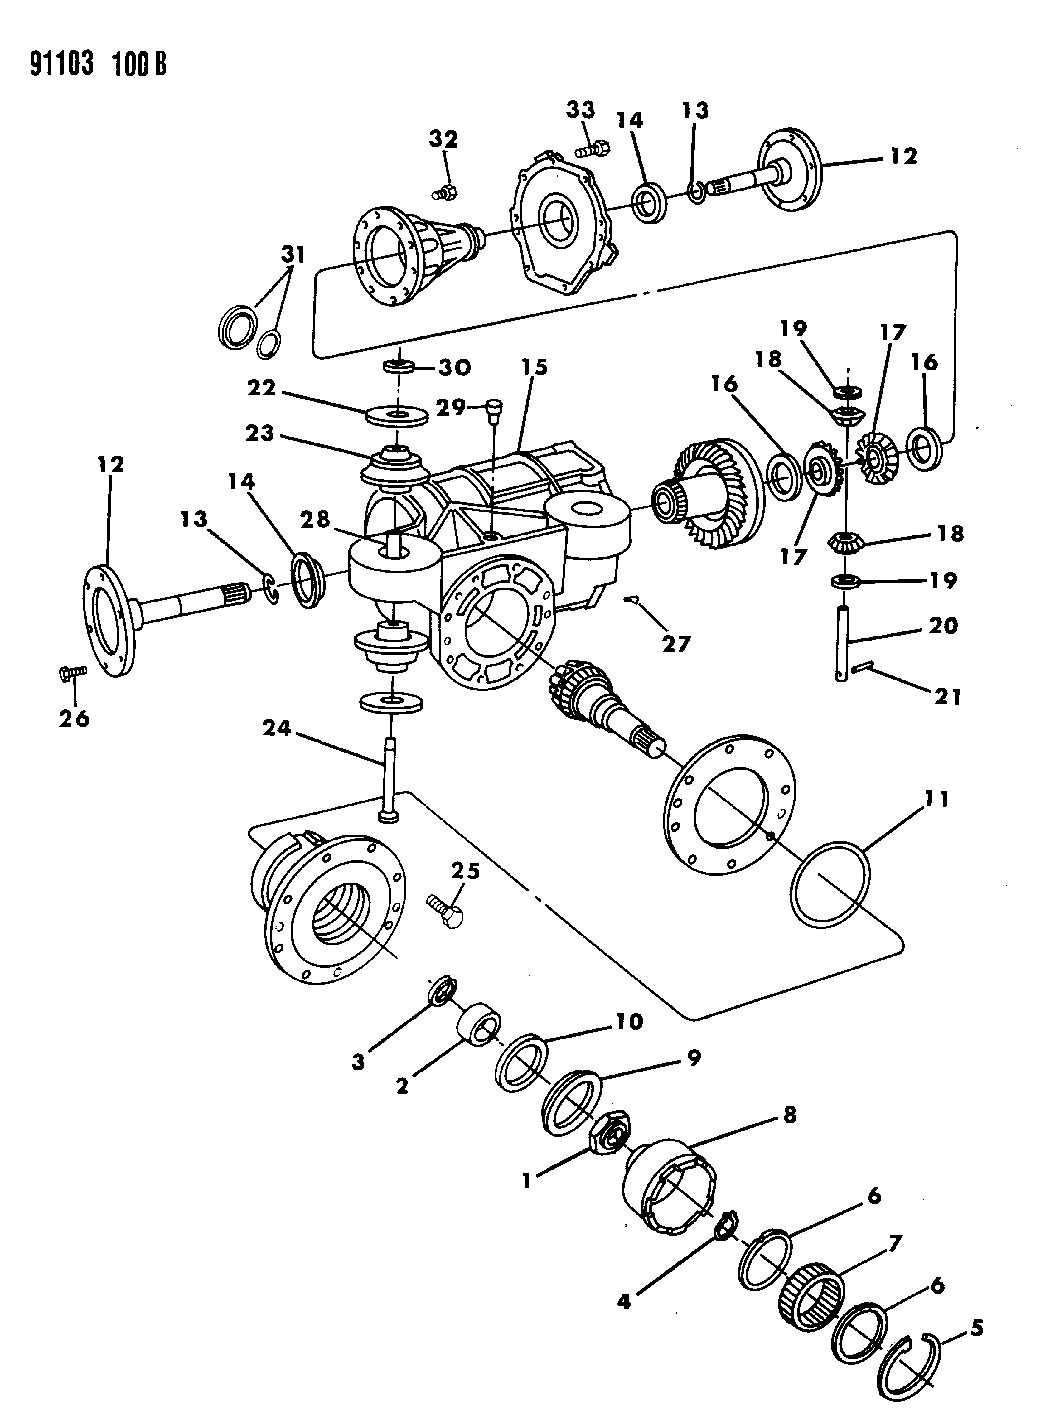 gmc w3500 wiring diagrams isuzu rodeo diagram free engine image for user